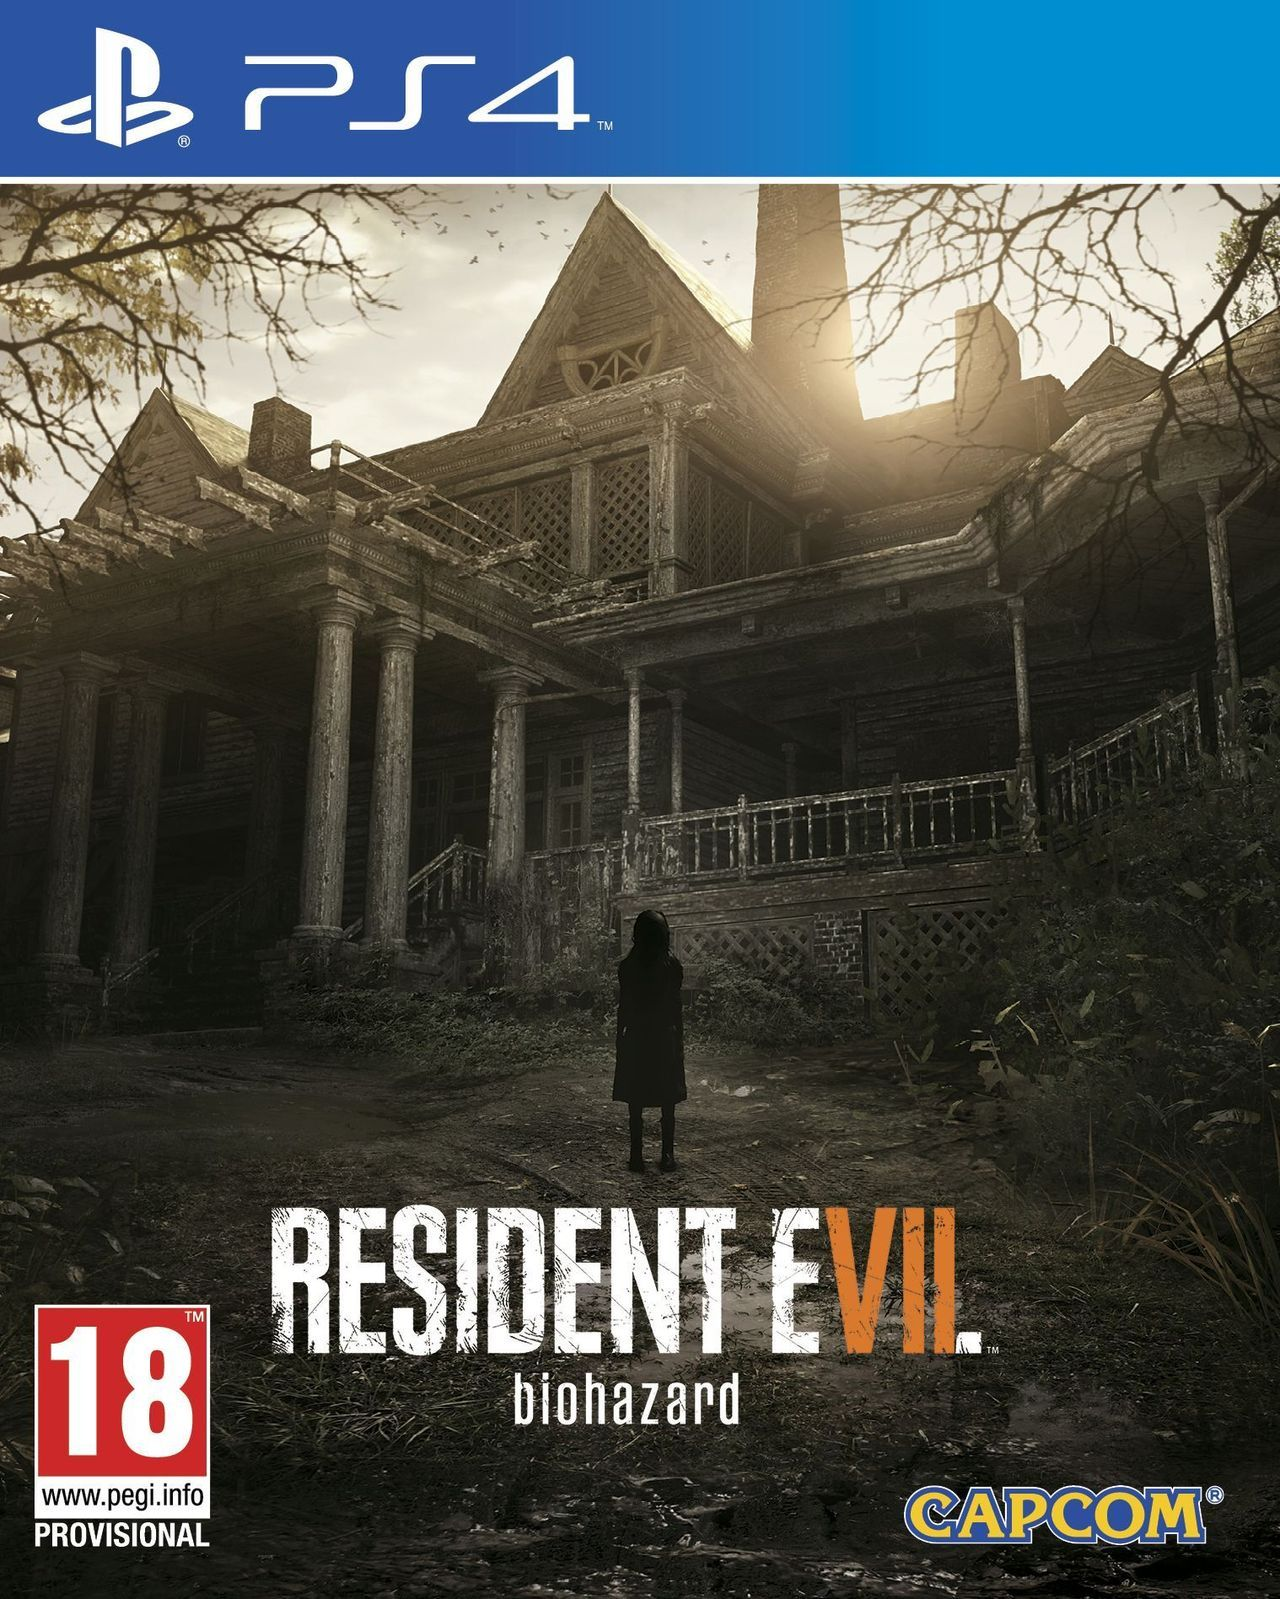 Resident Evil 7 Videojuego Ps4 Pc Y Xbox One Vandal